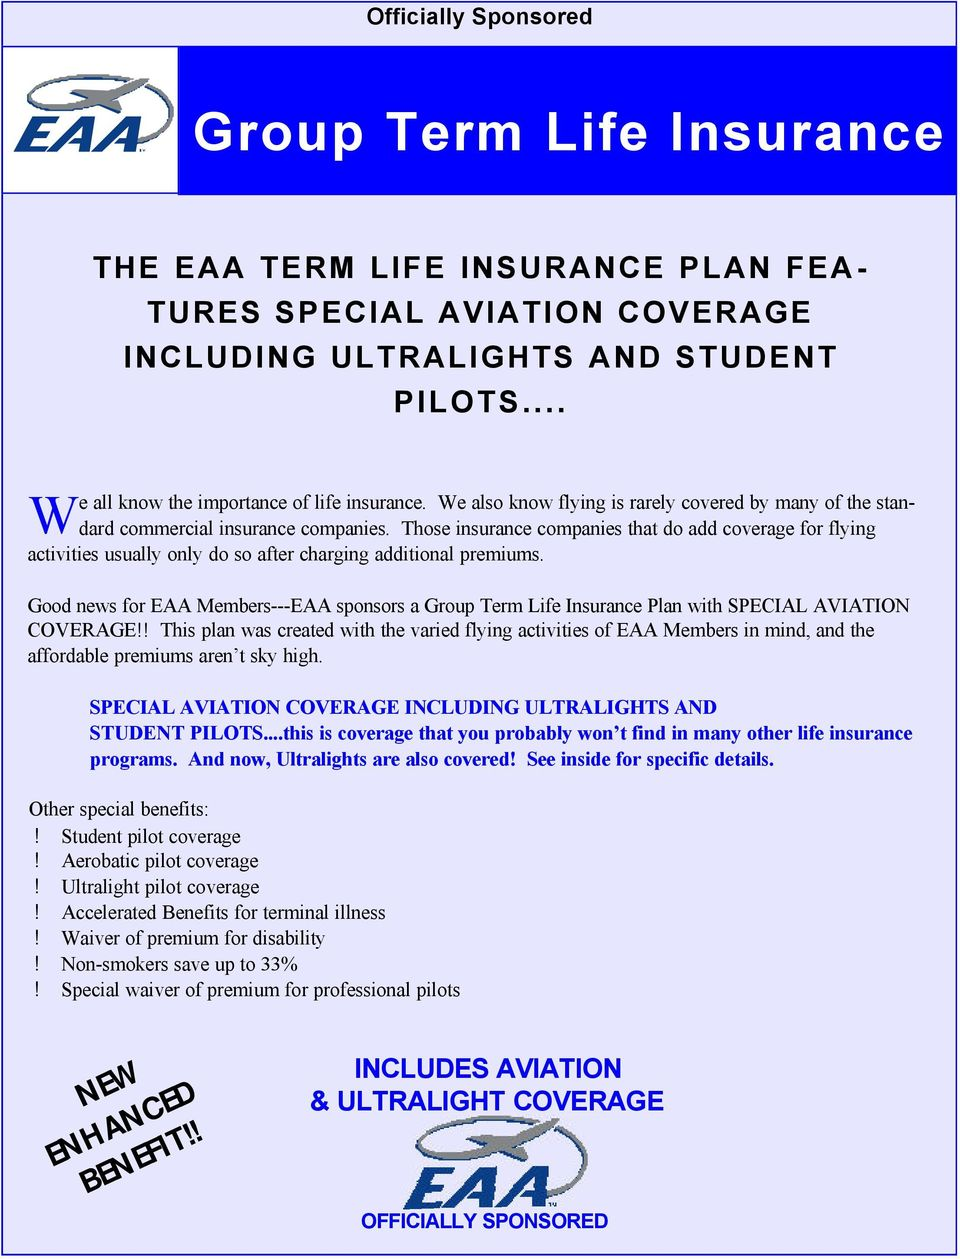 Those insurance companies that do add coverage for flying activities usually only do so after charging additional premiums.